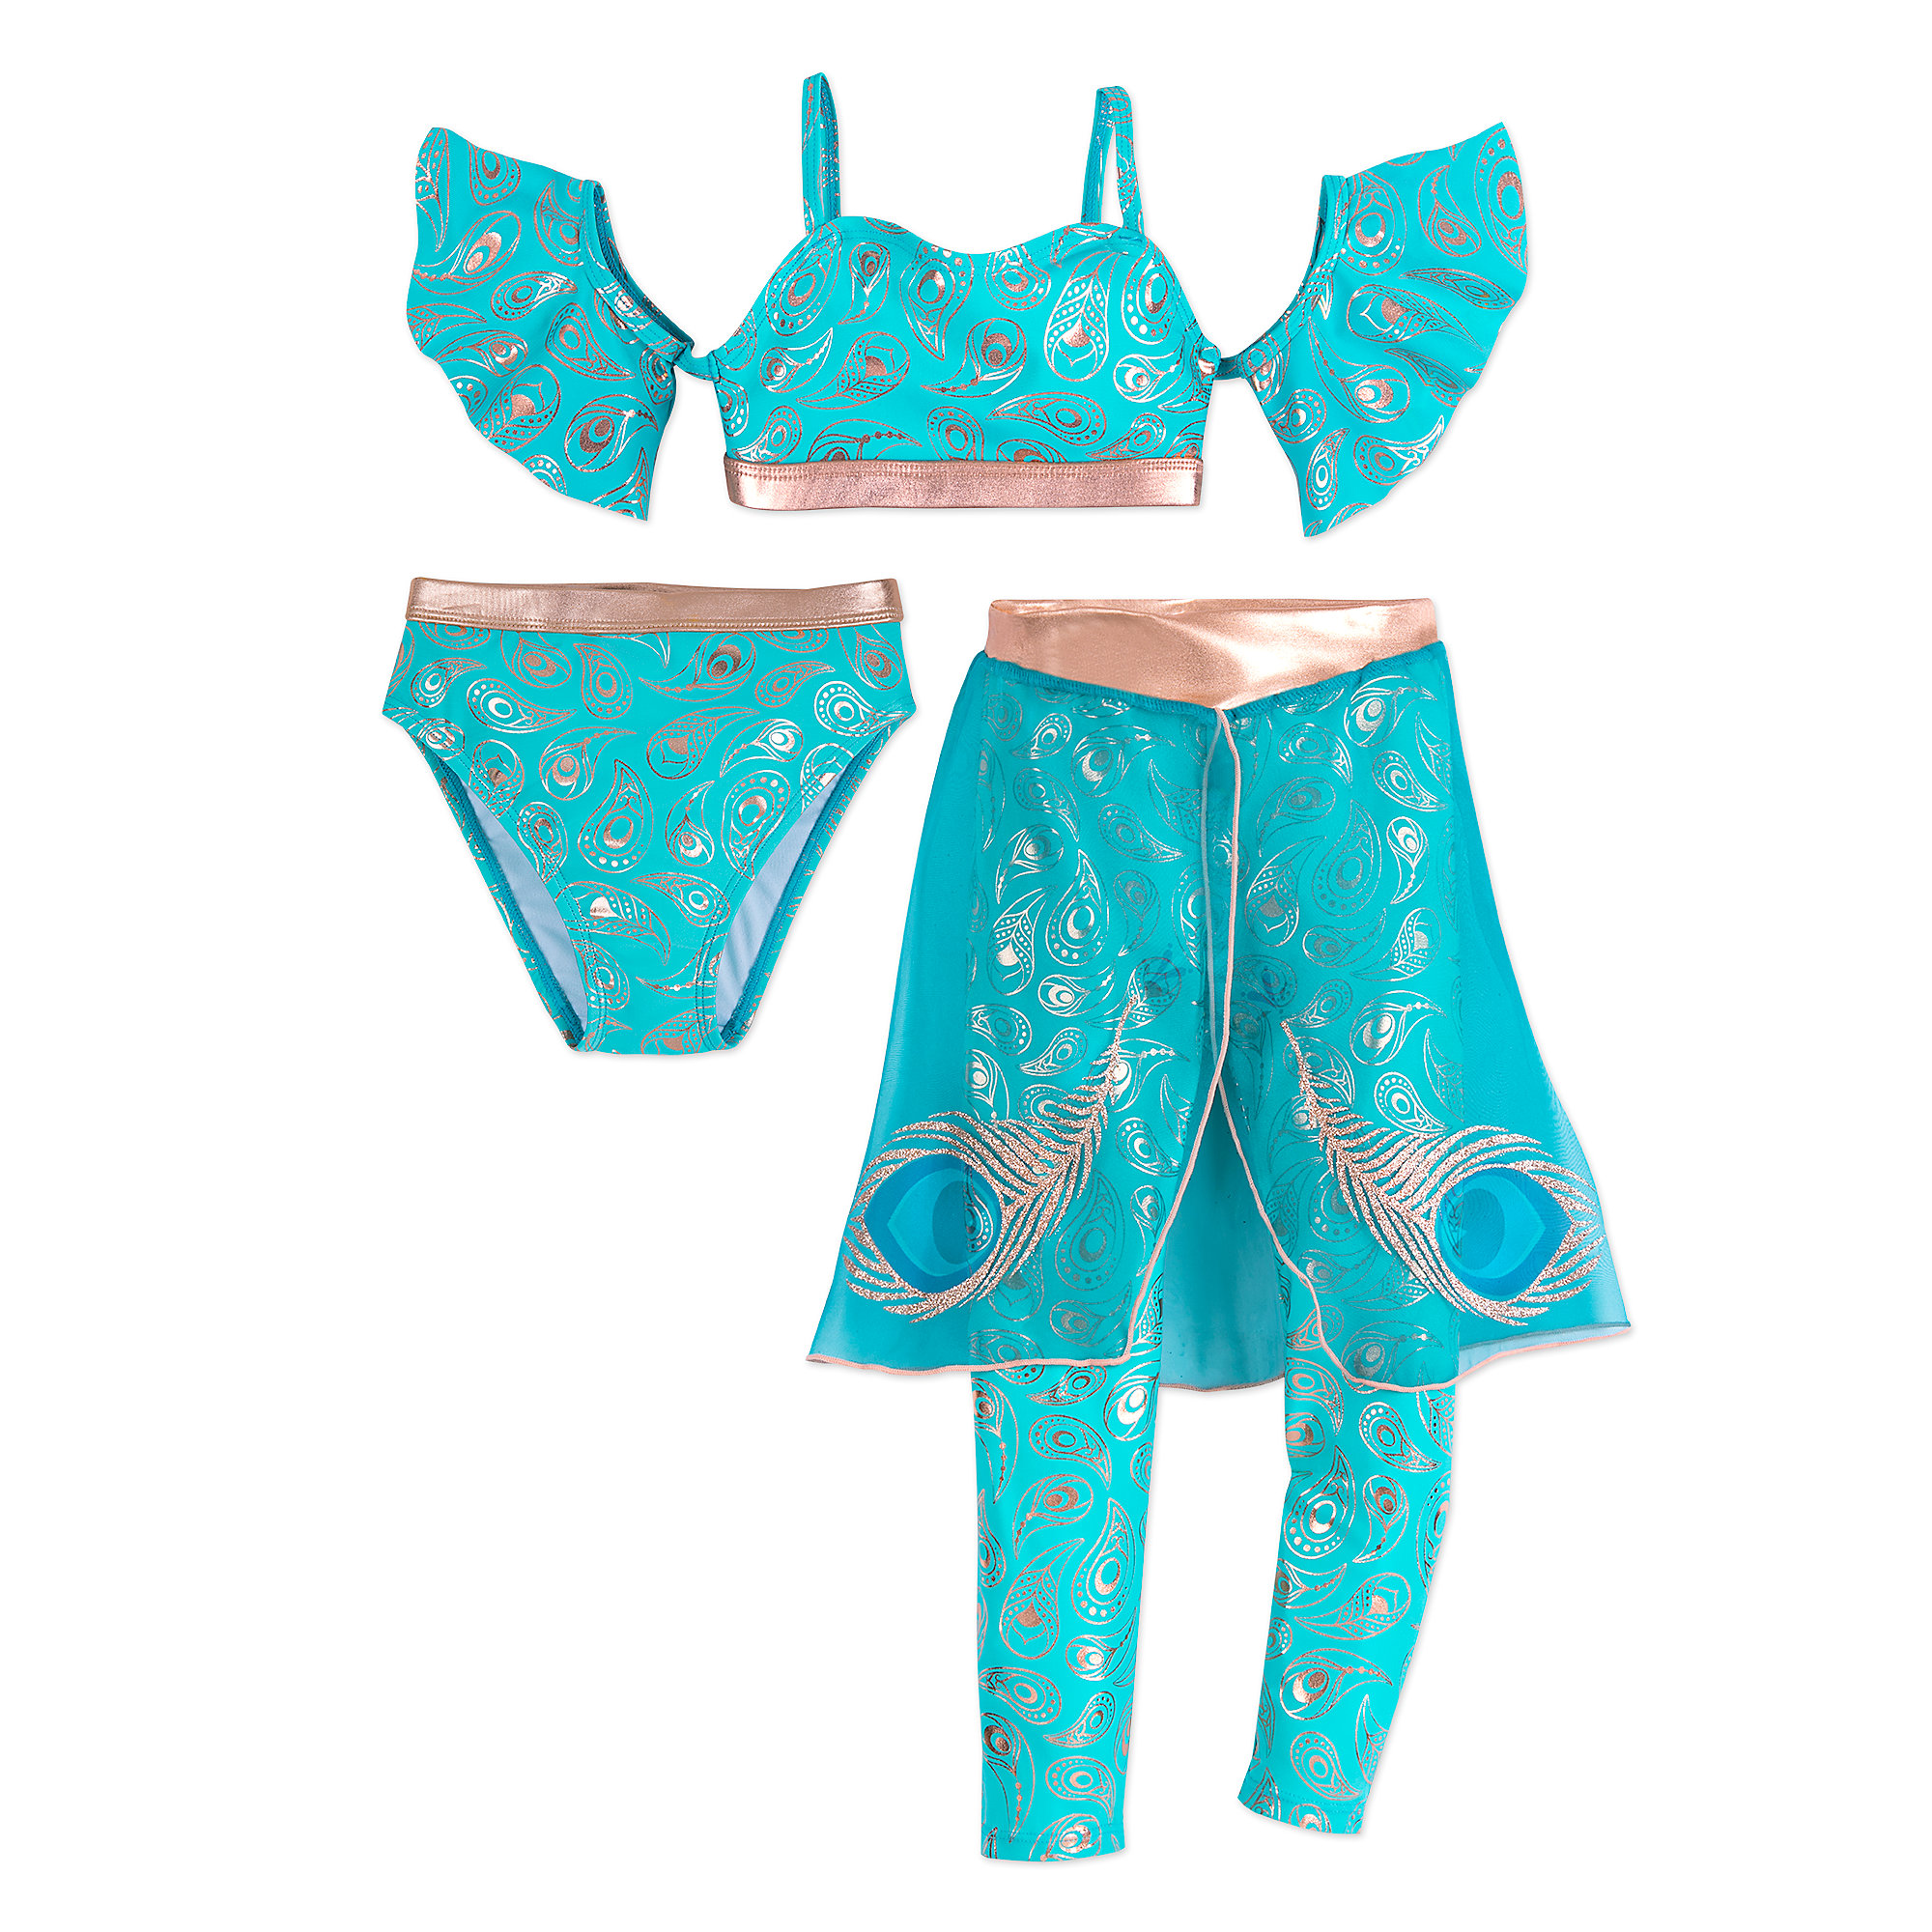 16d0ebfeeaa67 Jasmine Deluxe Swimsuit Set for Girls | shopDisney